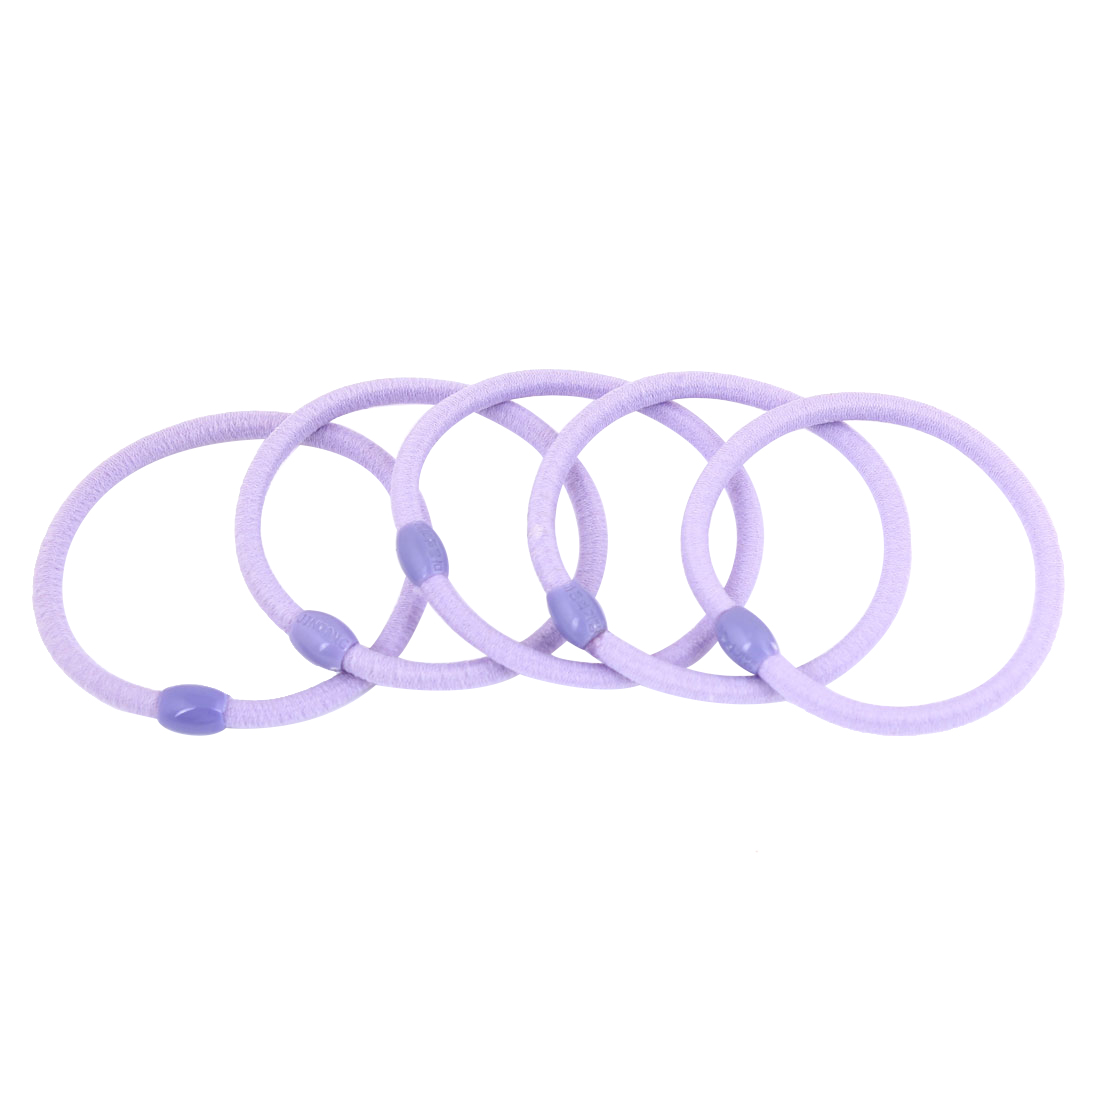 5 Pcs Light Purple Oval Beads Ponytail Holders Stretchy Hair Tie